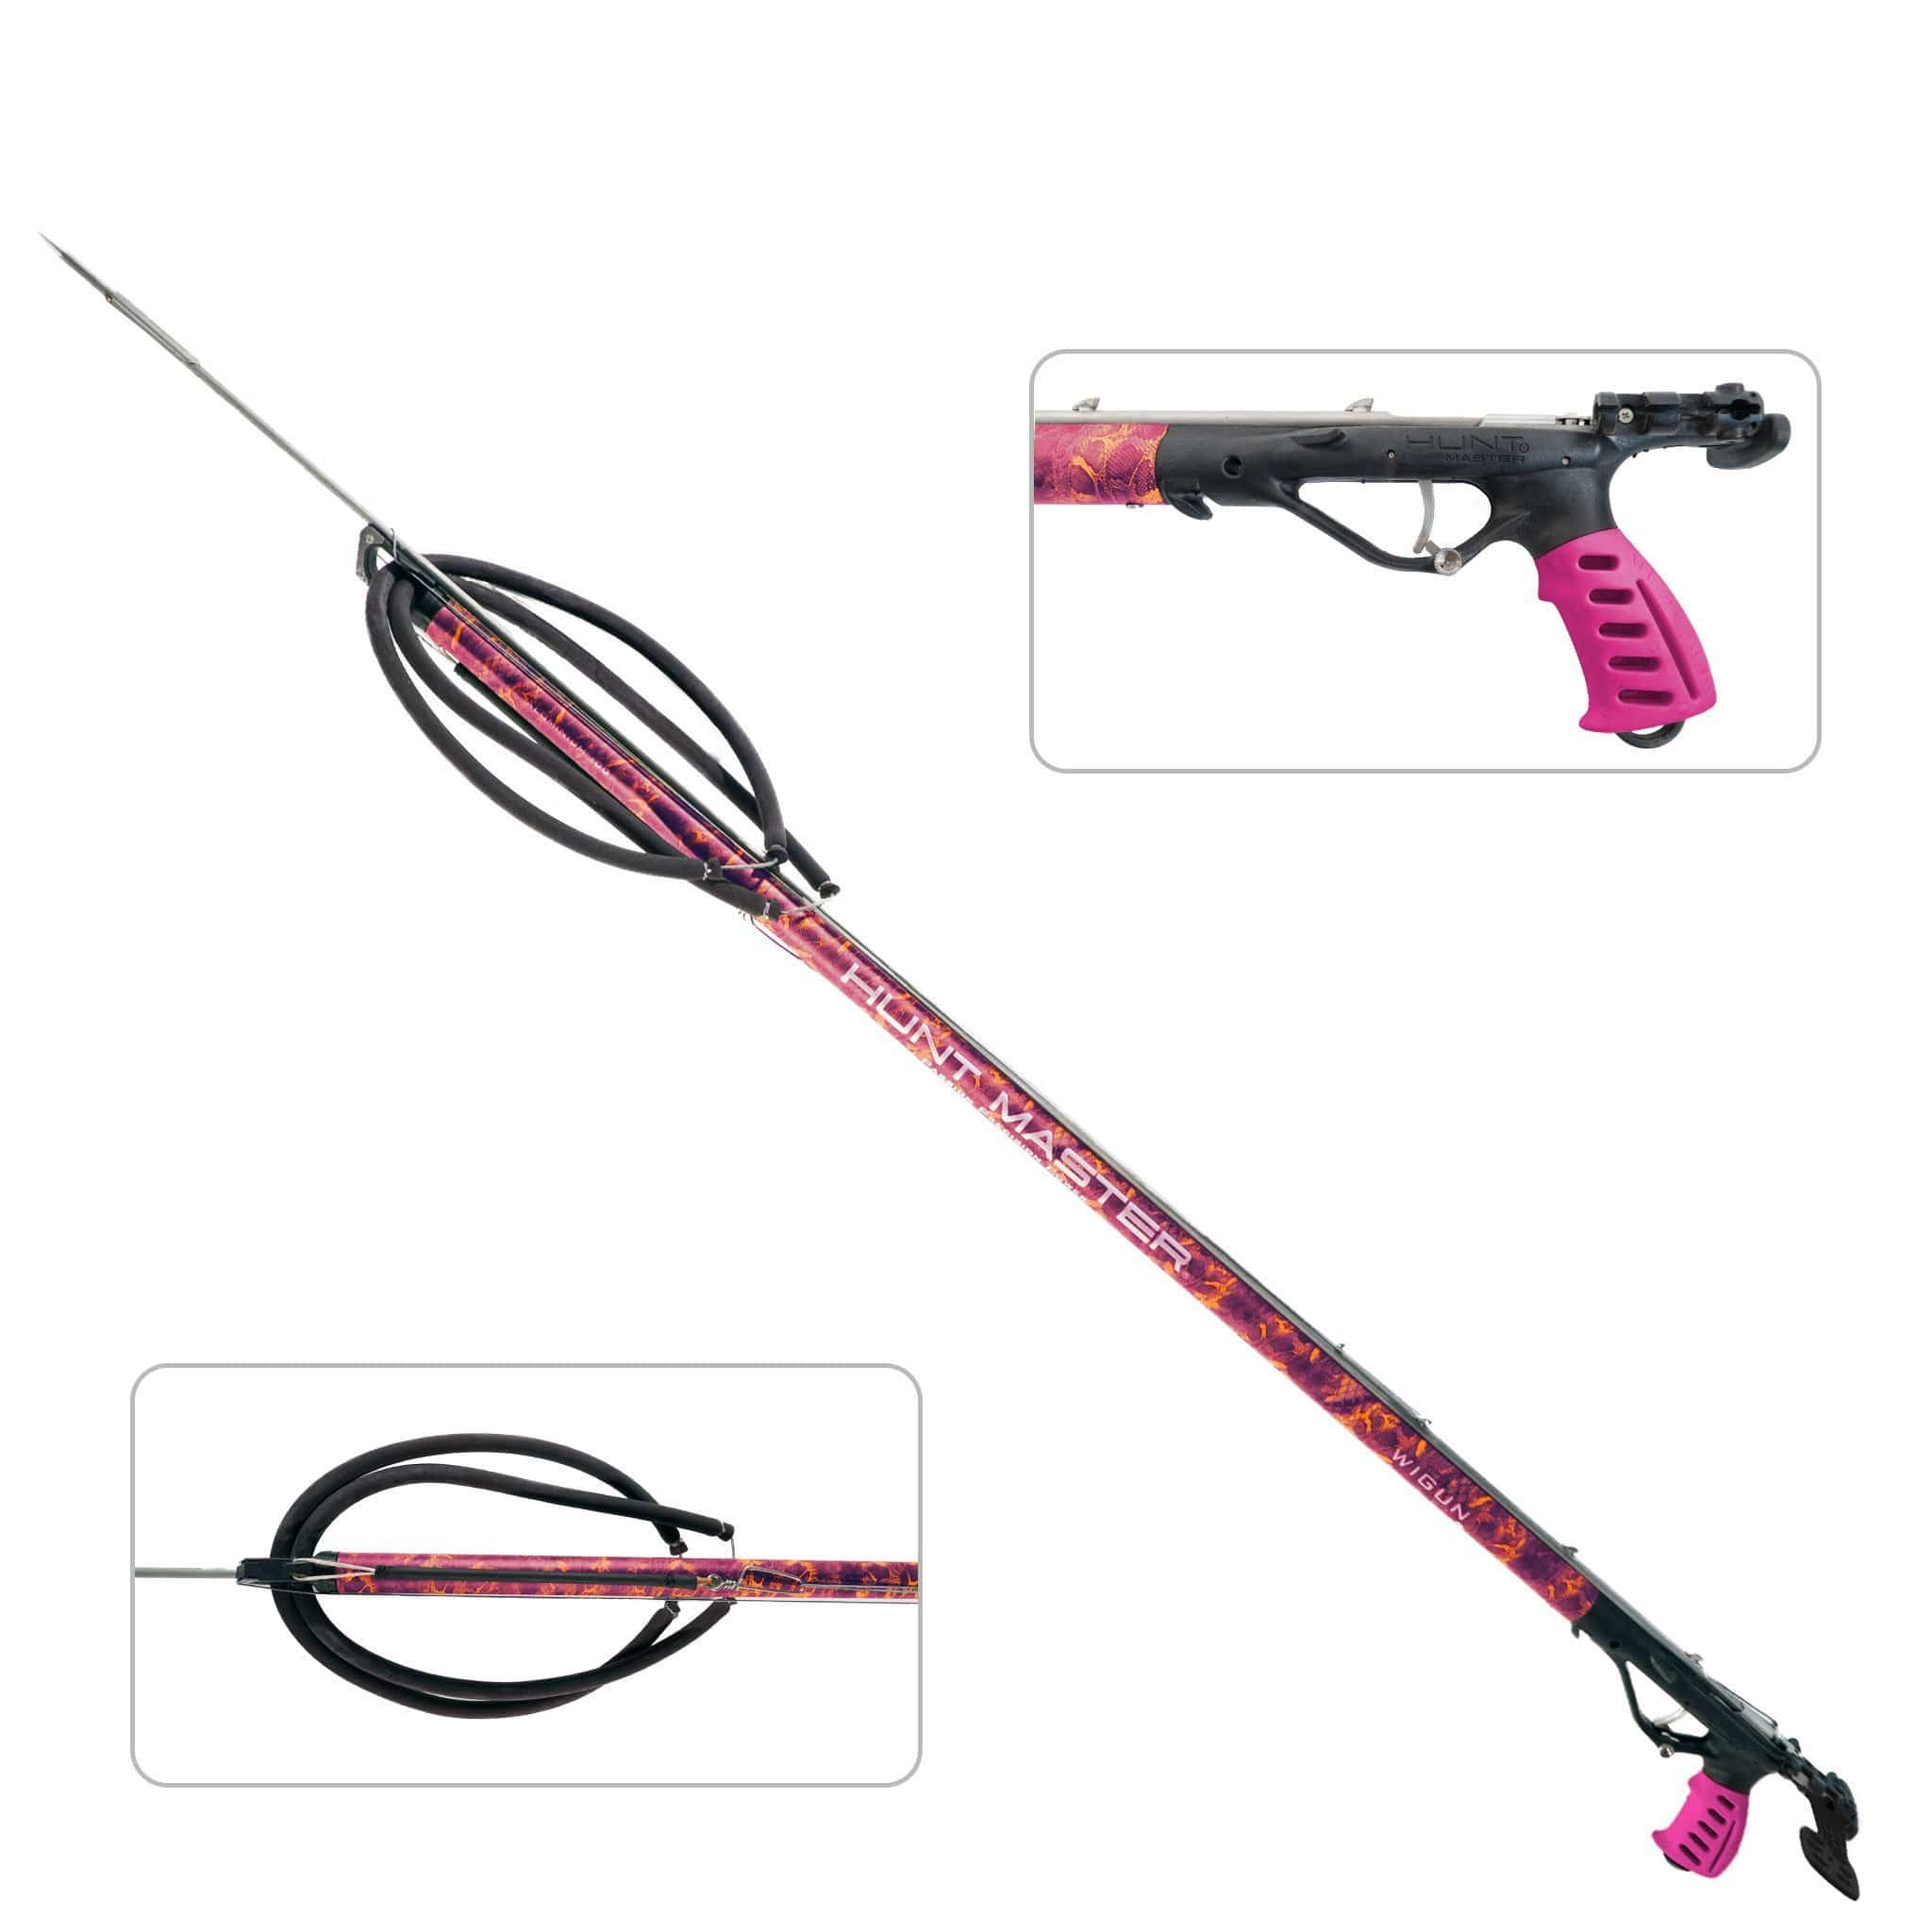 HuntMaster Wigun Aluminium Open Head Speargun - Huntress Camo Series (Pink) 75cm-110cm